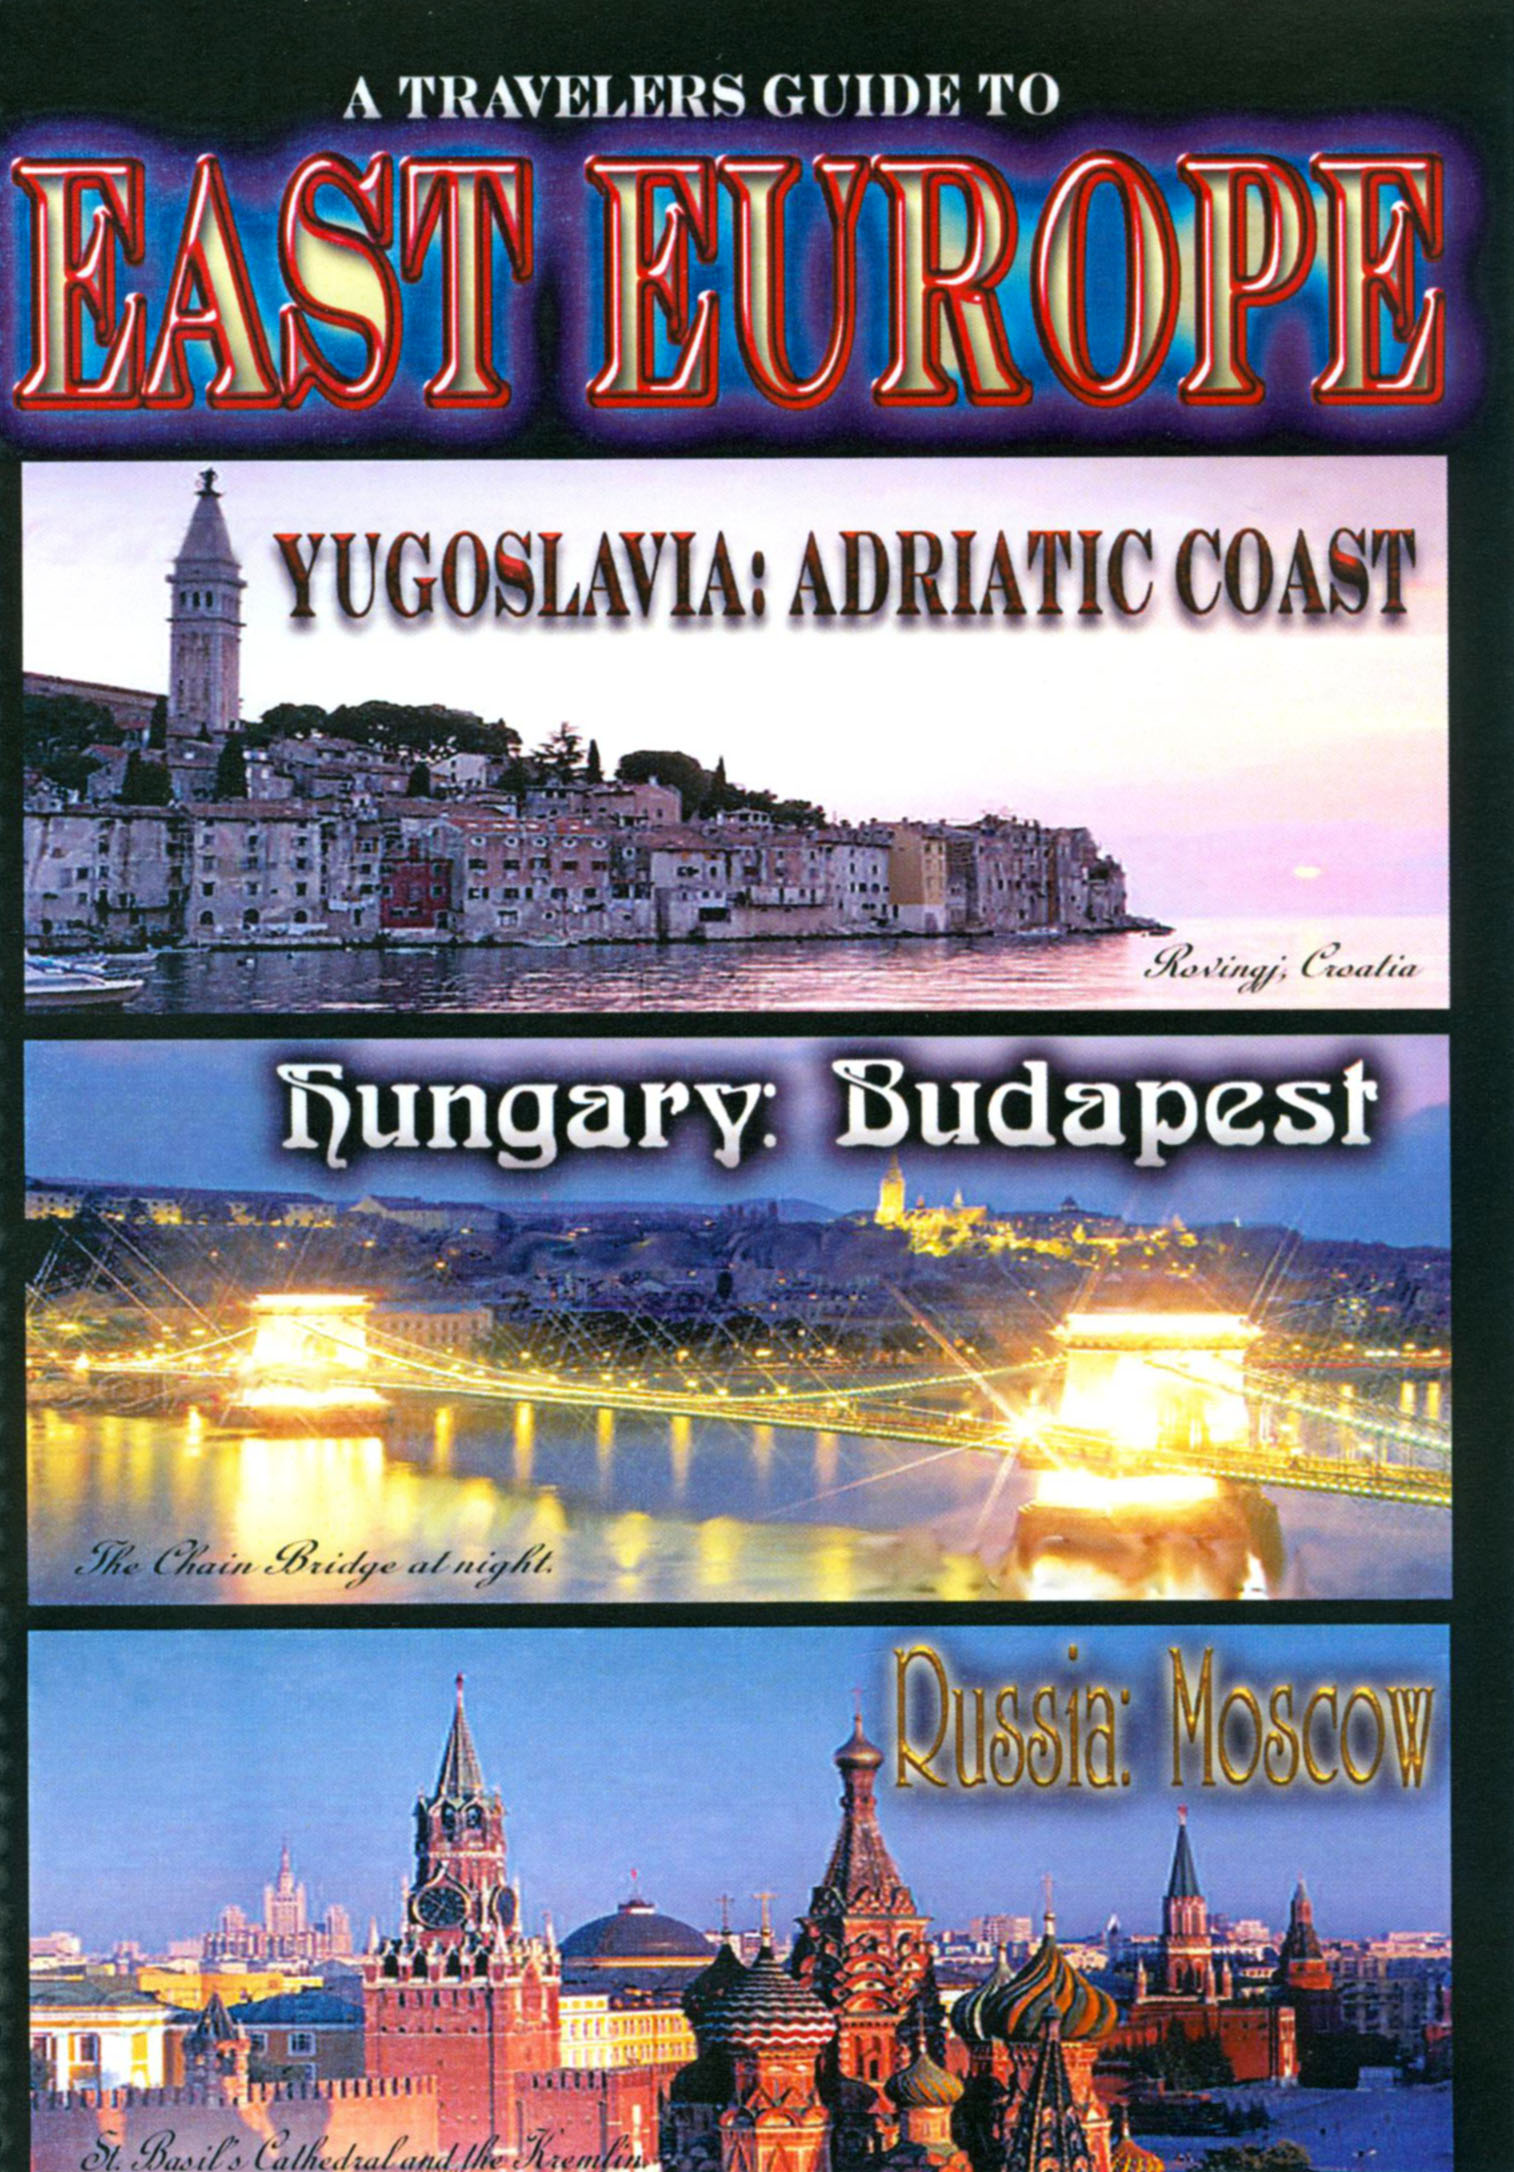 Travelers Guide to East Europe